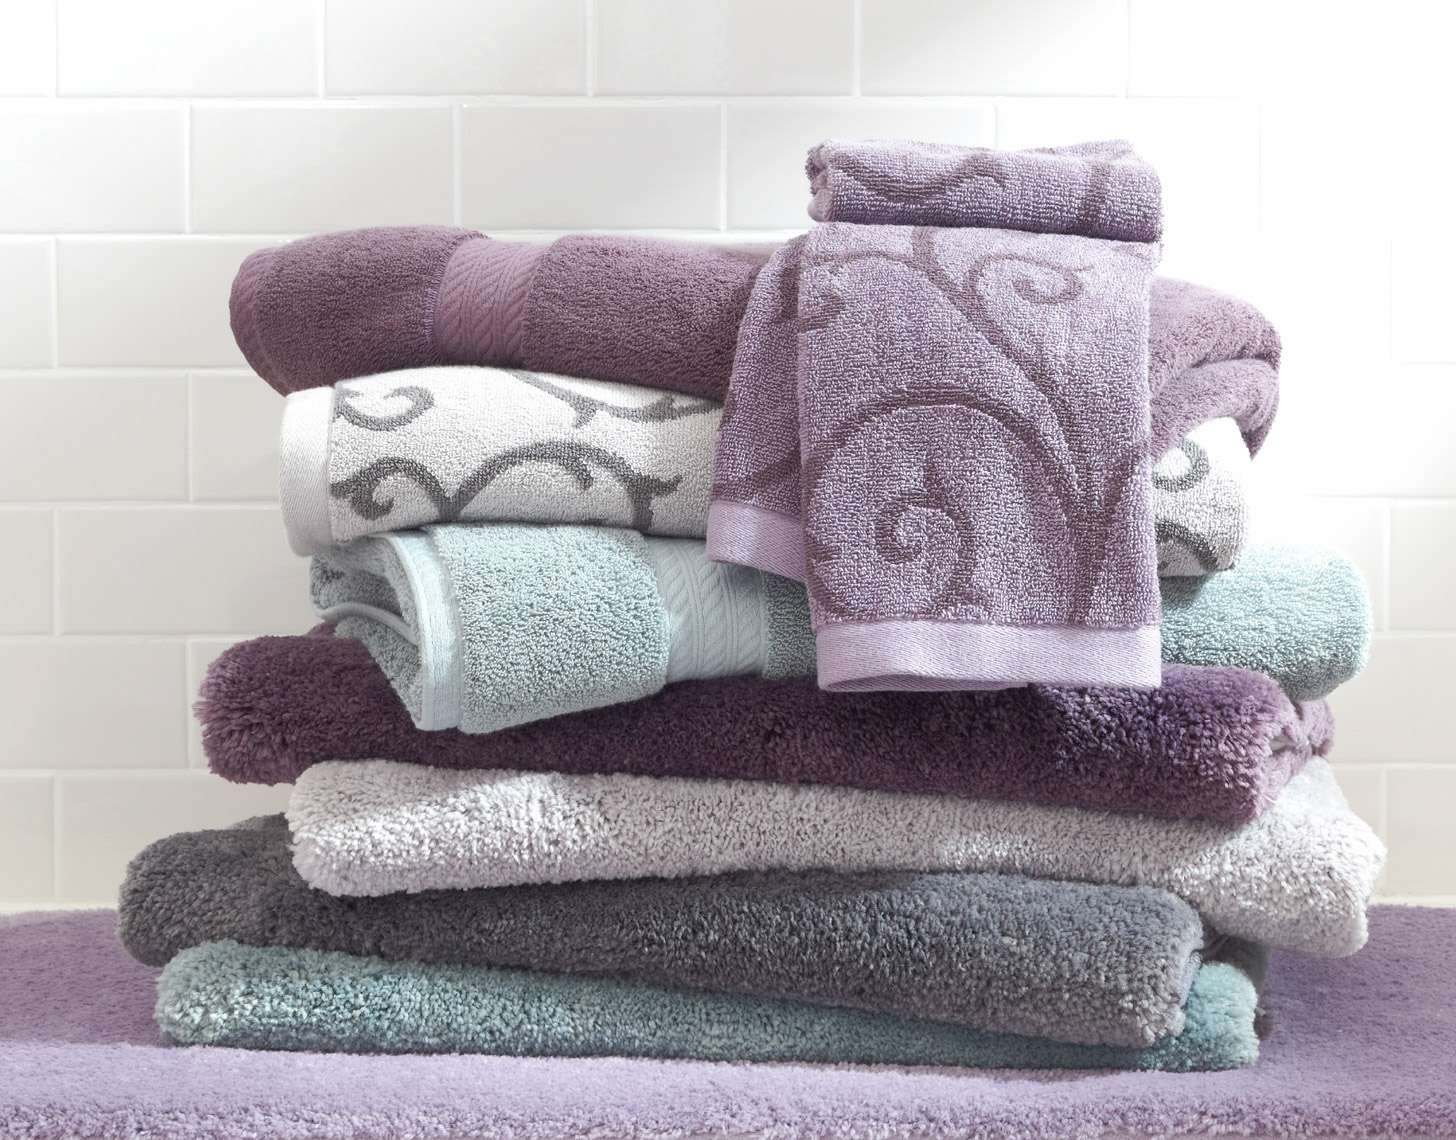 stacked plum and grey and teal towels on purple bathmat with white tile walls San Francisco product photographer